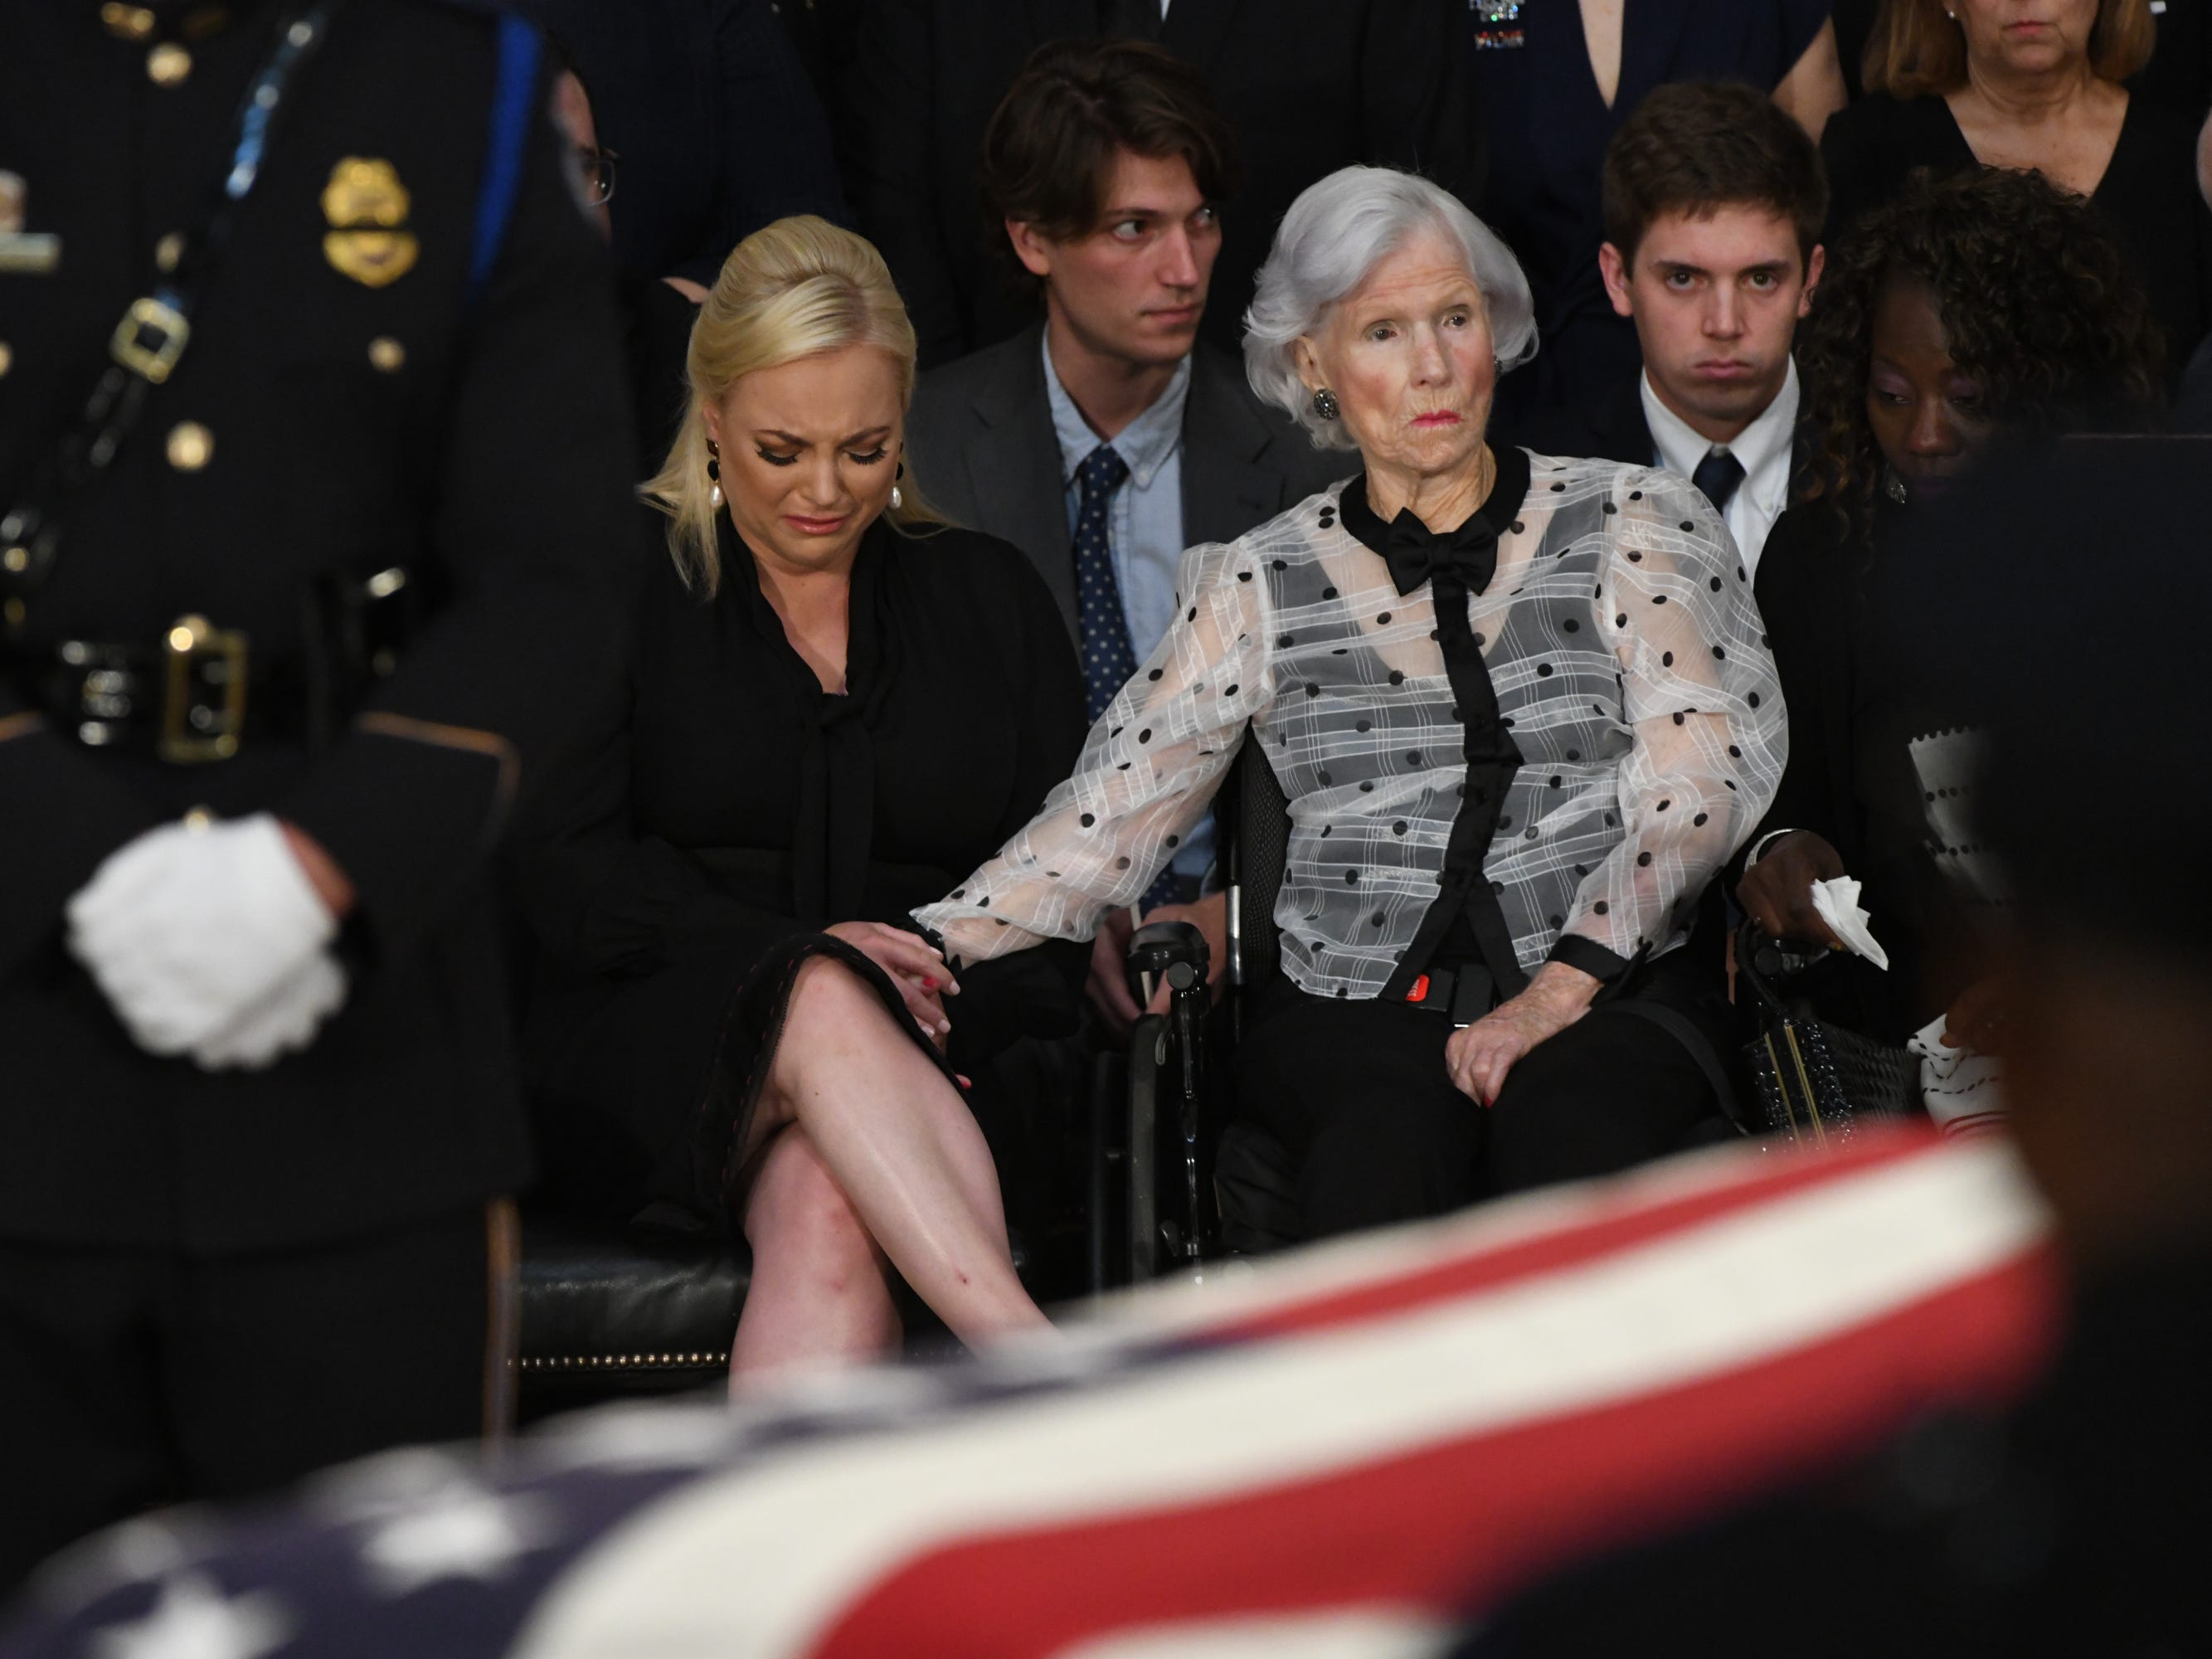 8/31/18 11:08:02 AM -- Washington, DC, U.S.A  -- Meghan and Roberta McCain hold hands as the body of John McCain lies in state at the U.S. Capitol in Washington on Aug. 31, 2018 in Washington. Sen. McCain died on Aug. 25. --    Photo by Jasper Colt, USA TODAY Staff ORG XMIT:  JC 137436 McCain U.S. Capi 8/31/2018 (Via OlyDrop)